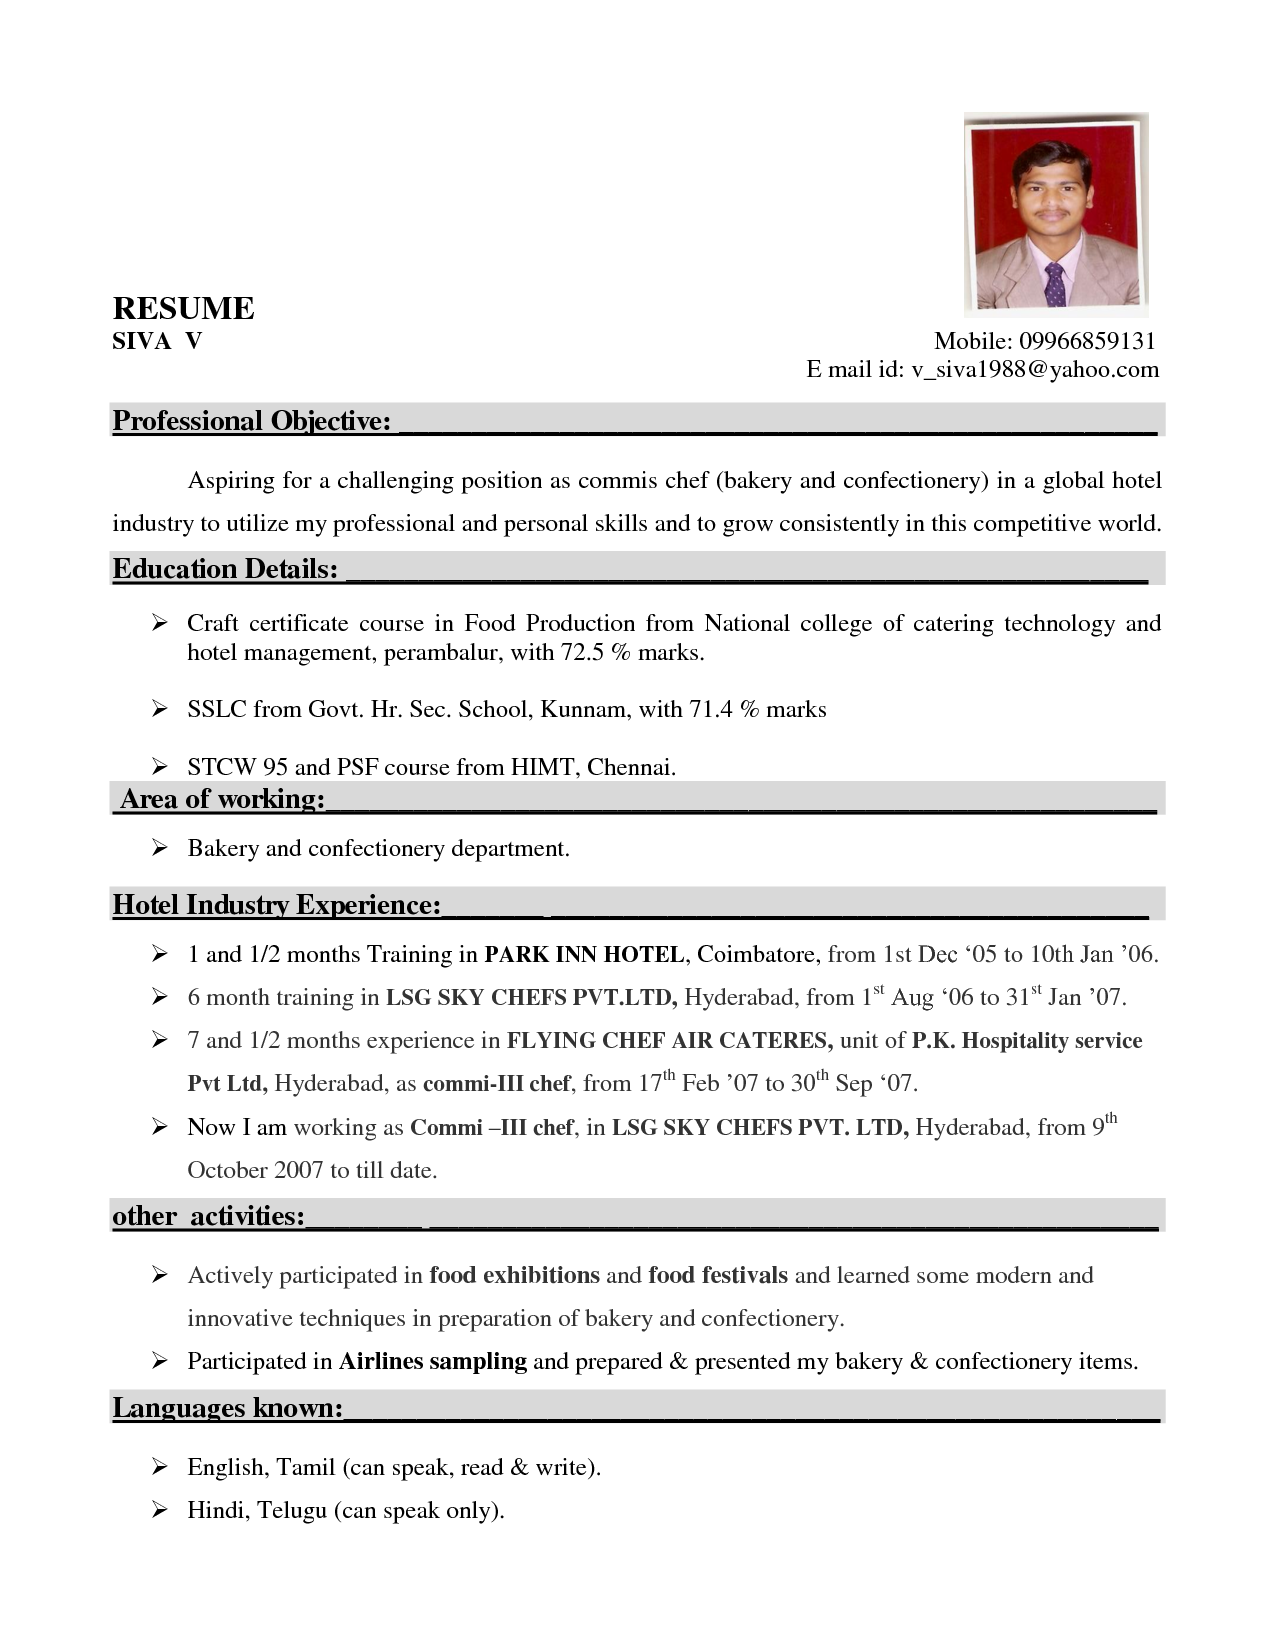 Resume Sample For Hotel Chef